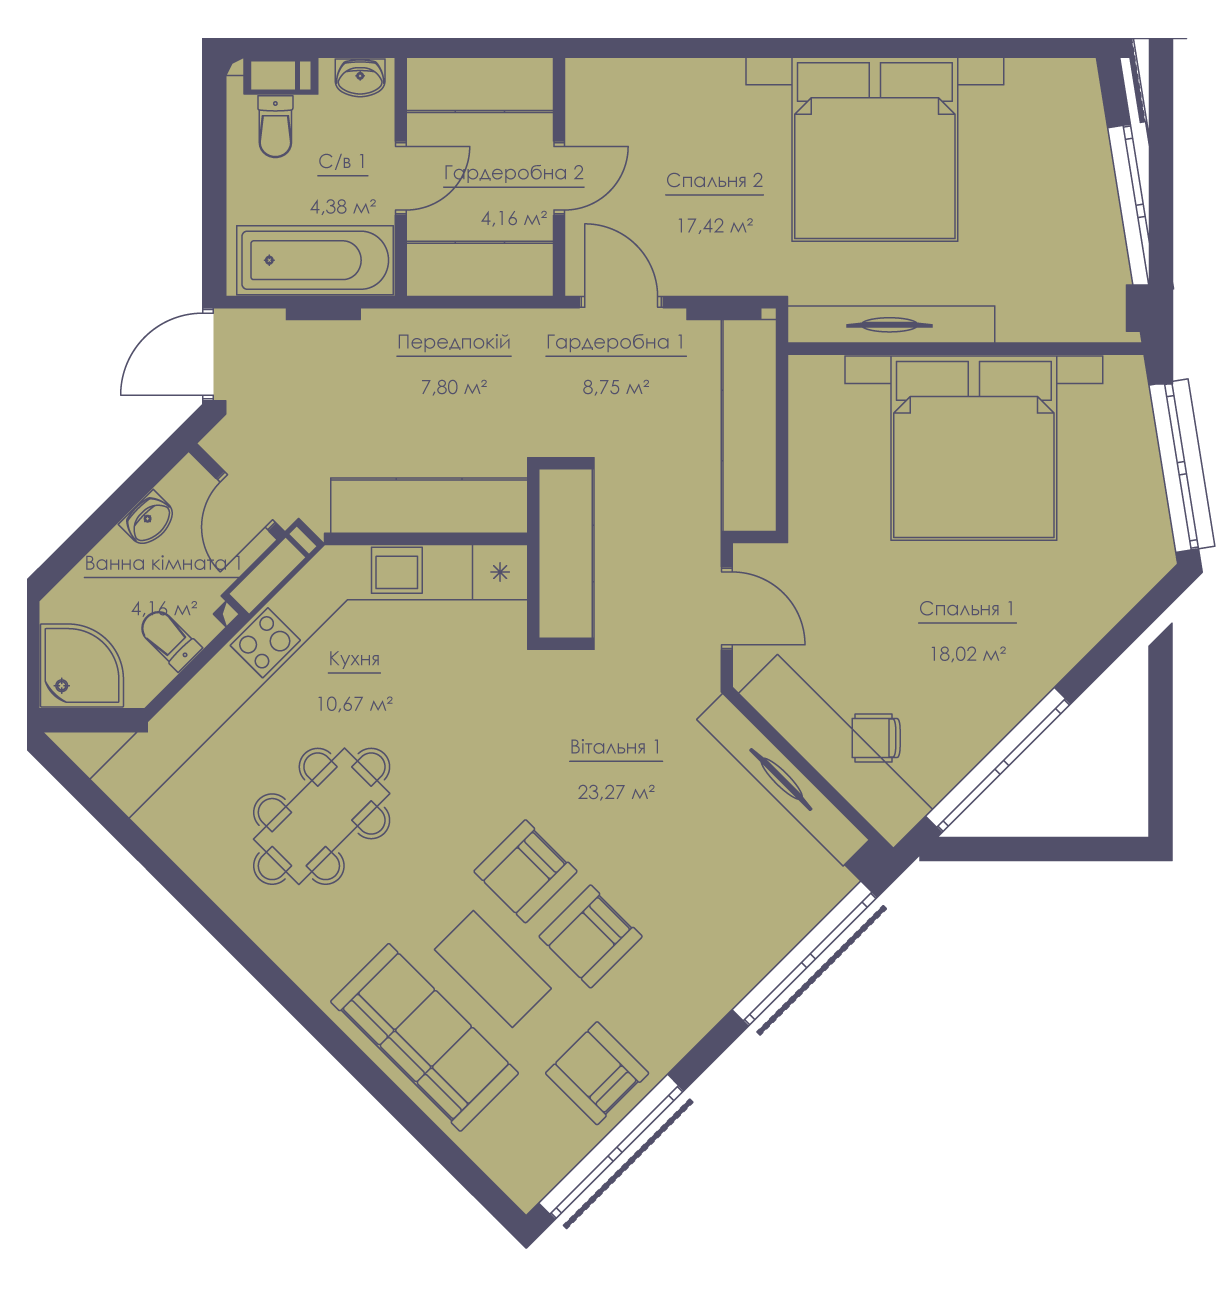 Apartment layout KV_91_3a_1_1_12-1